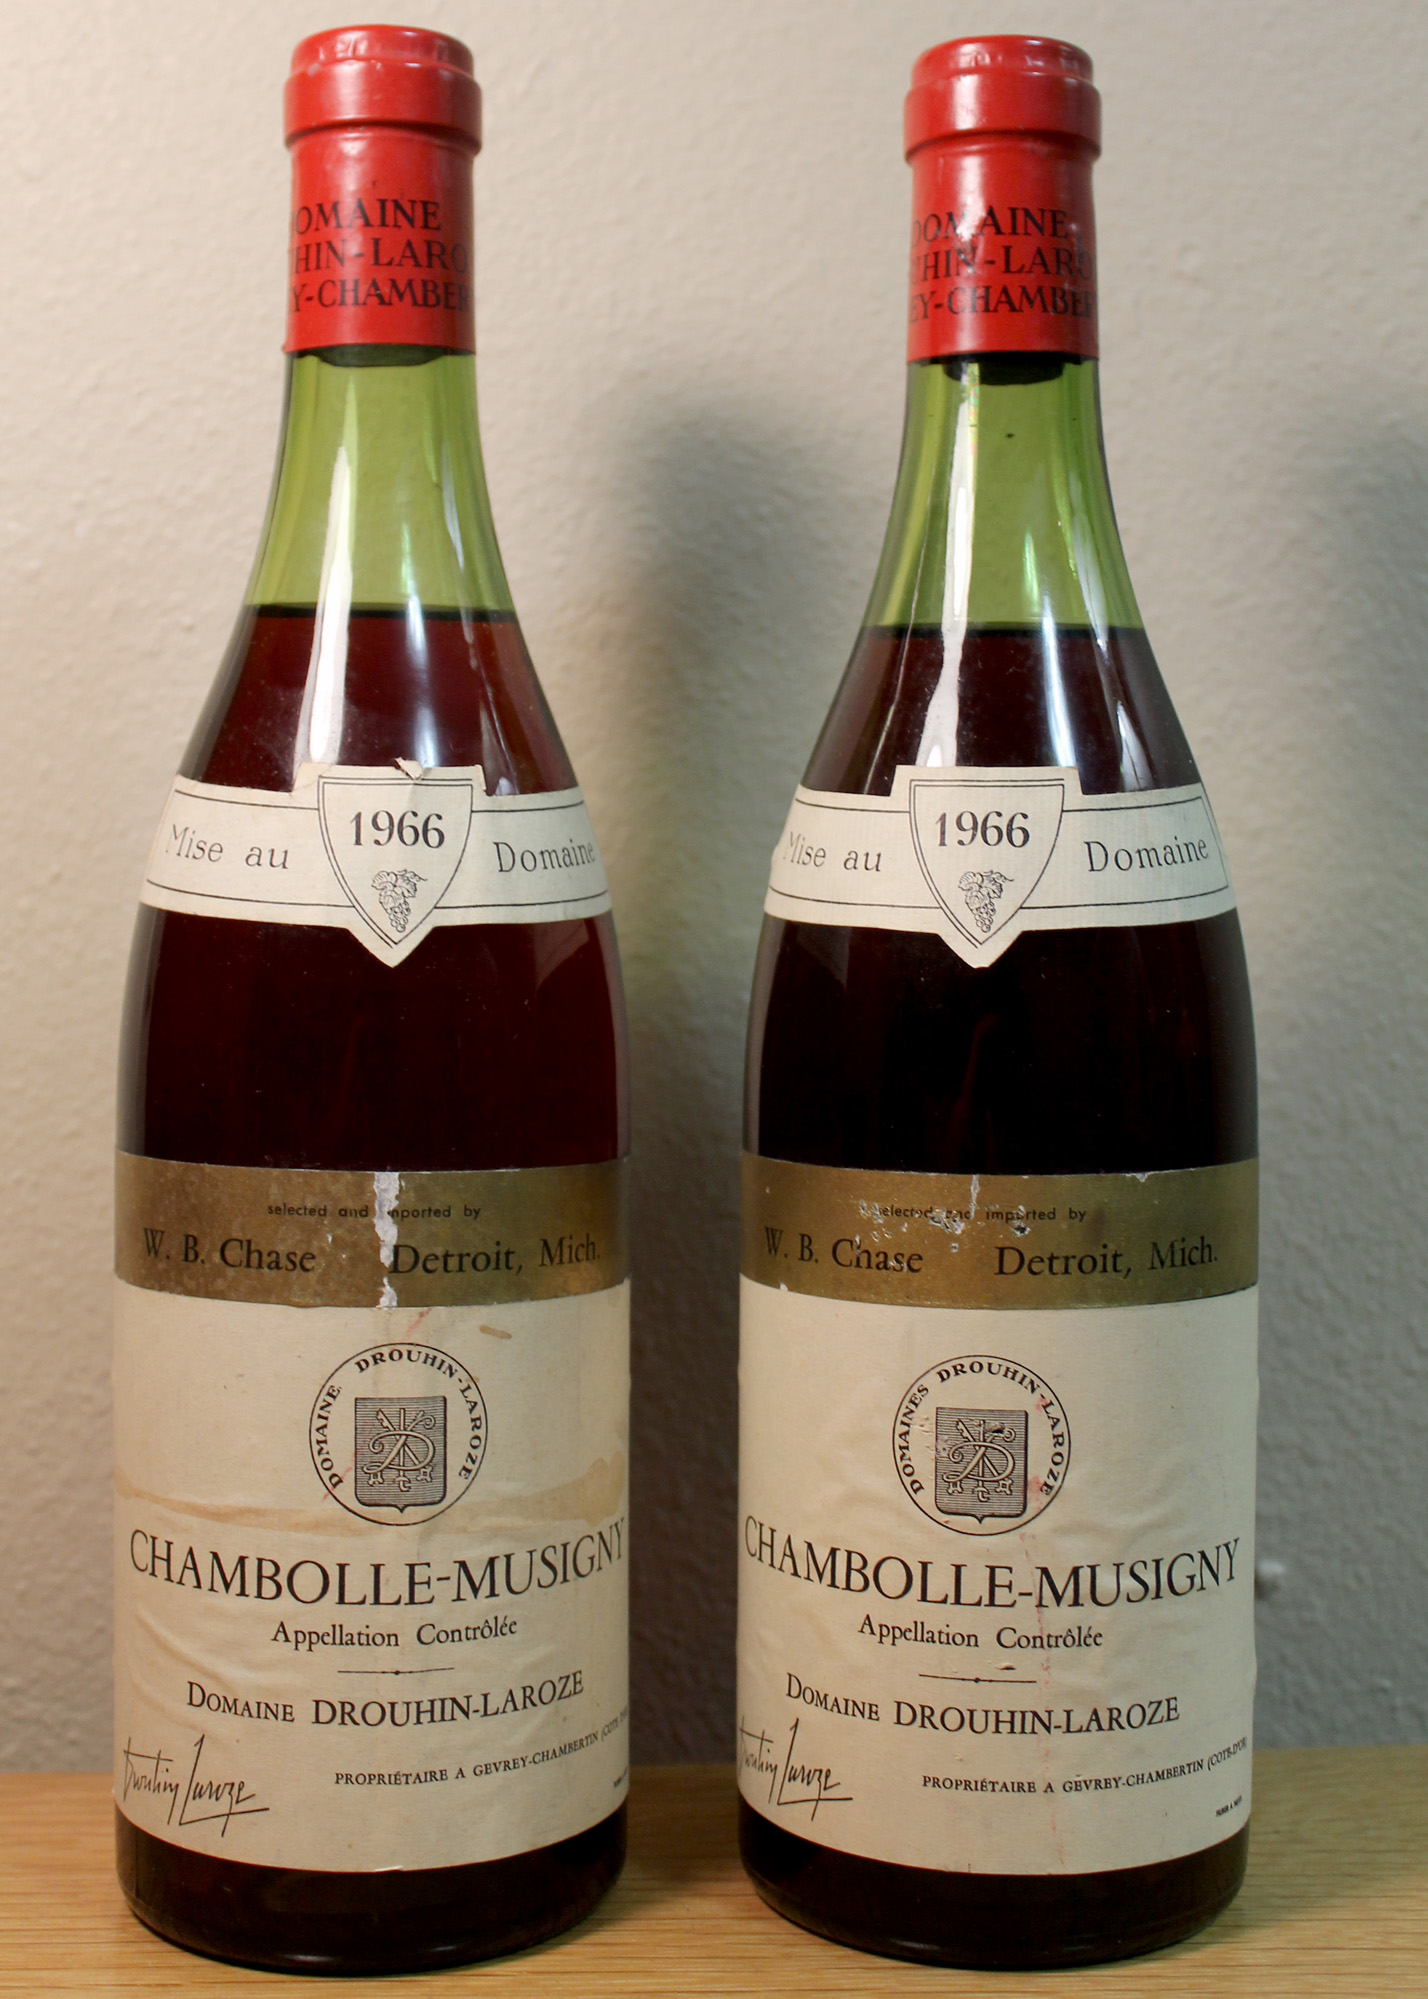 Burgundy: Chambolle-Musigny (1966). Produced by Drouhin-Laroze and imported by Cruse/J. Garneau.